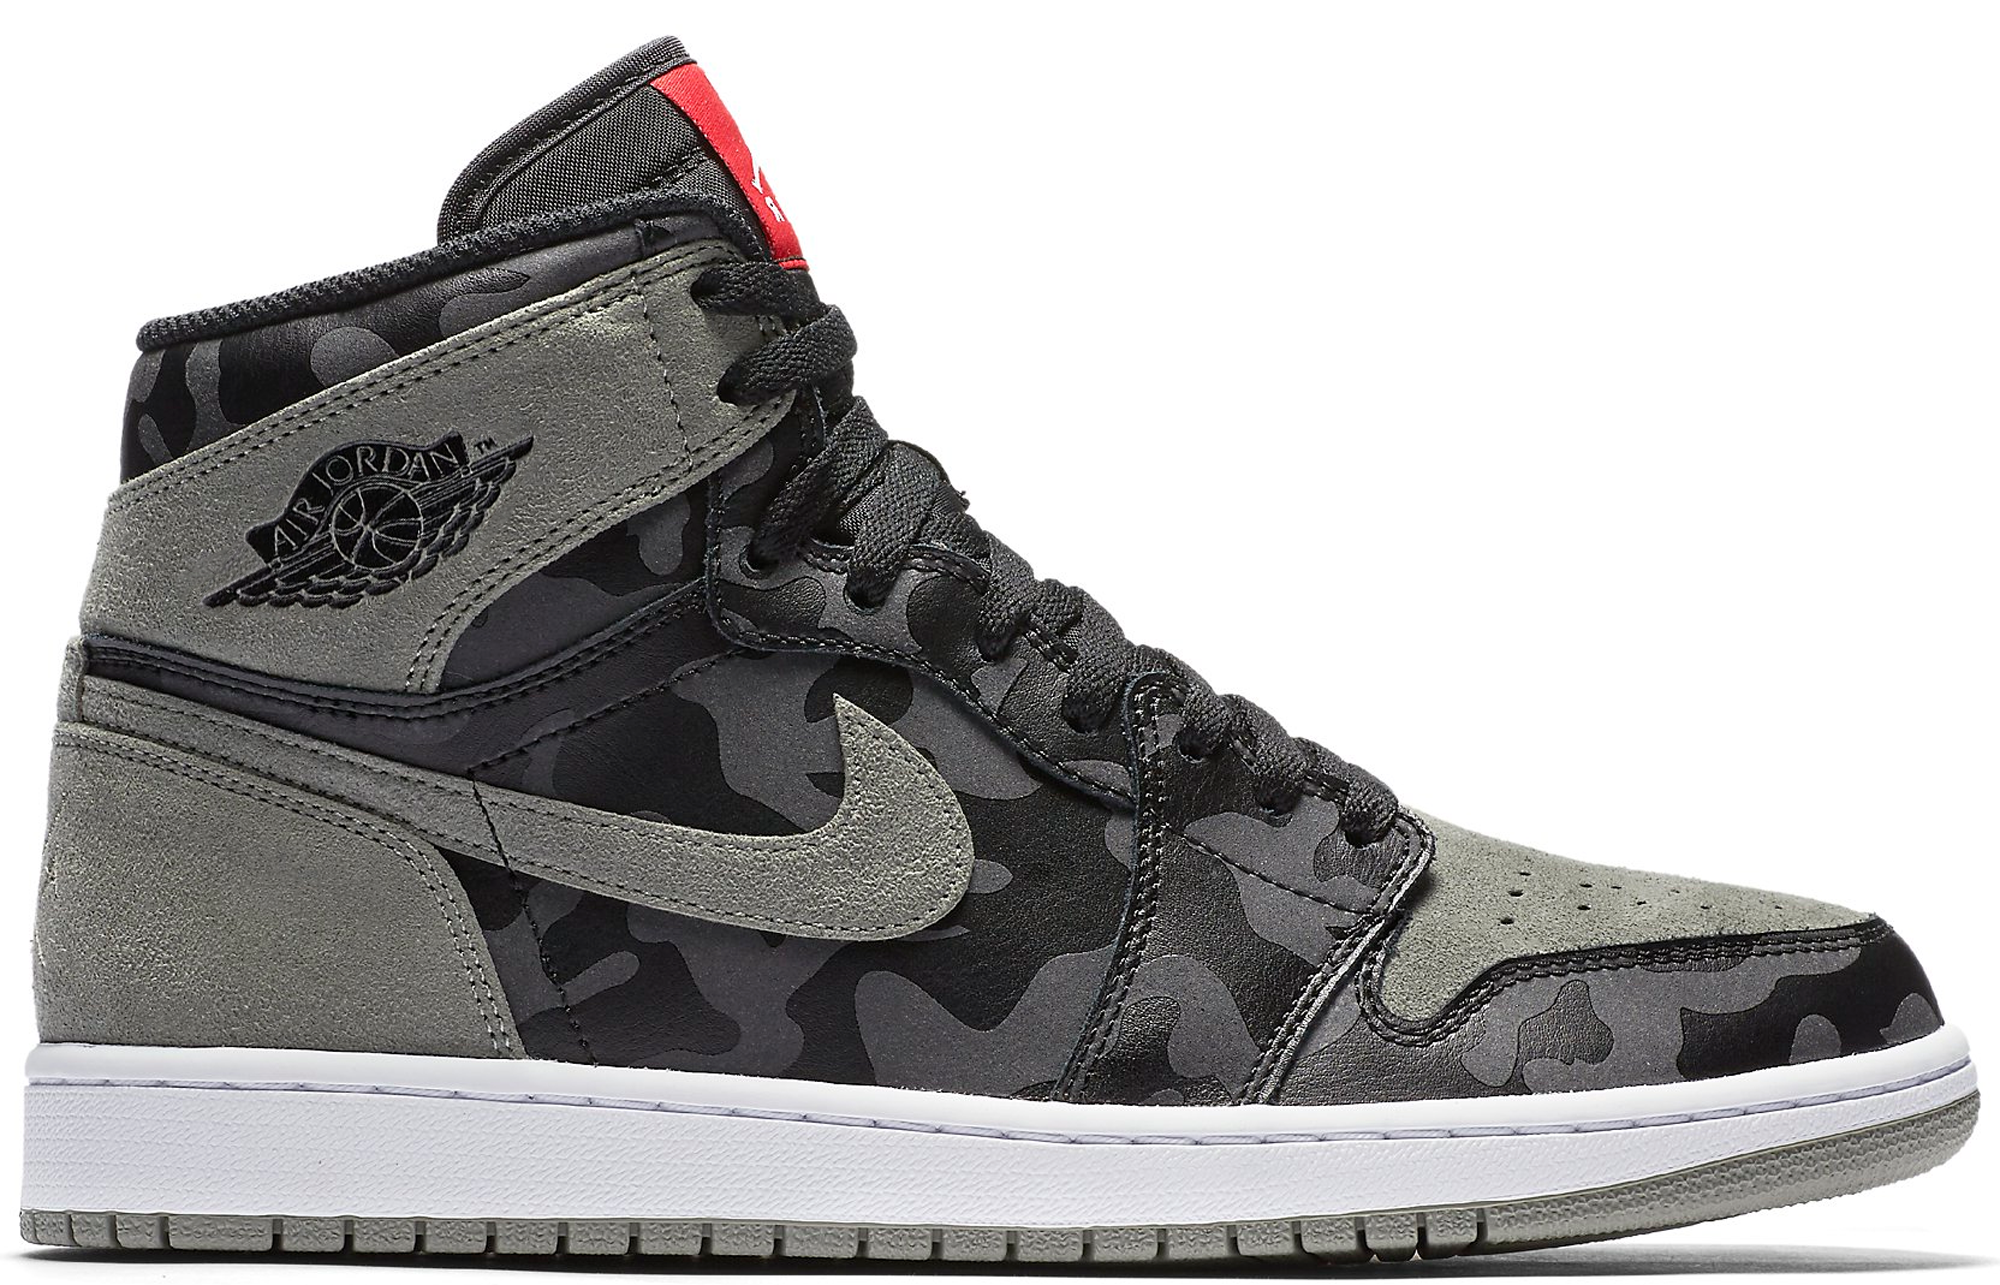 17949f4d2ccb Air Jordan 1 Retro High Premium Camo 3M Black Dark Stucco Shadow